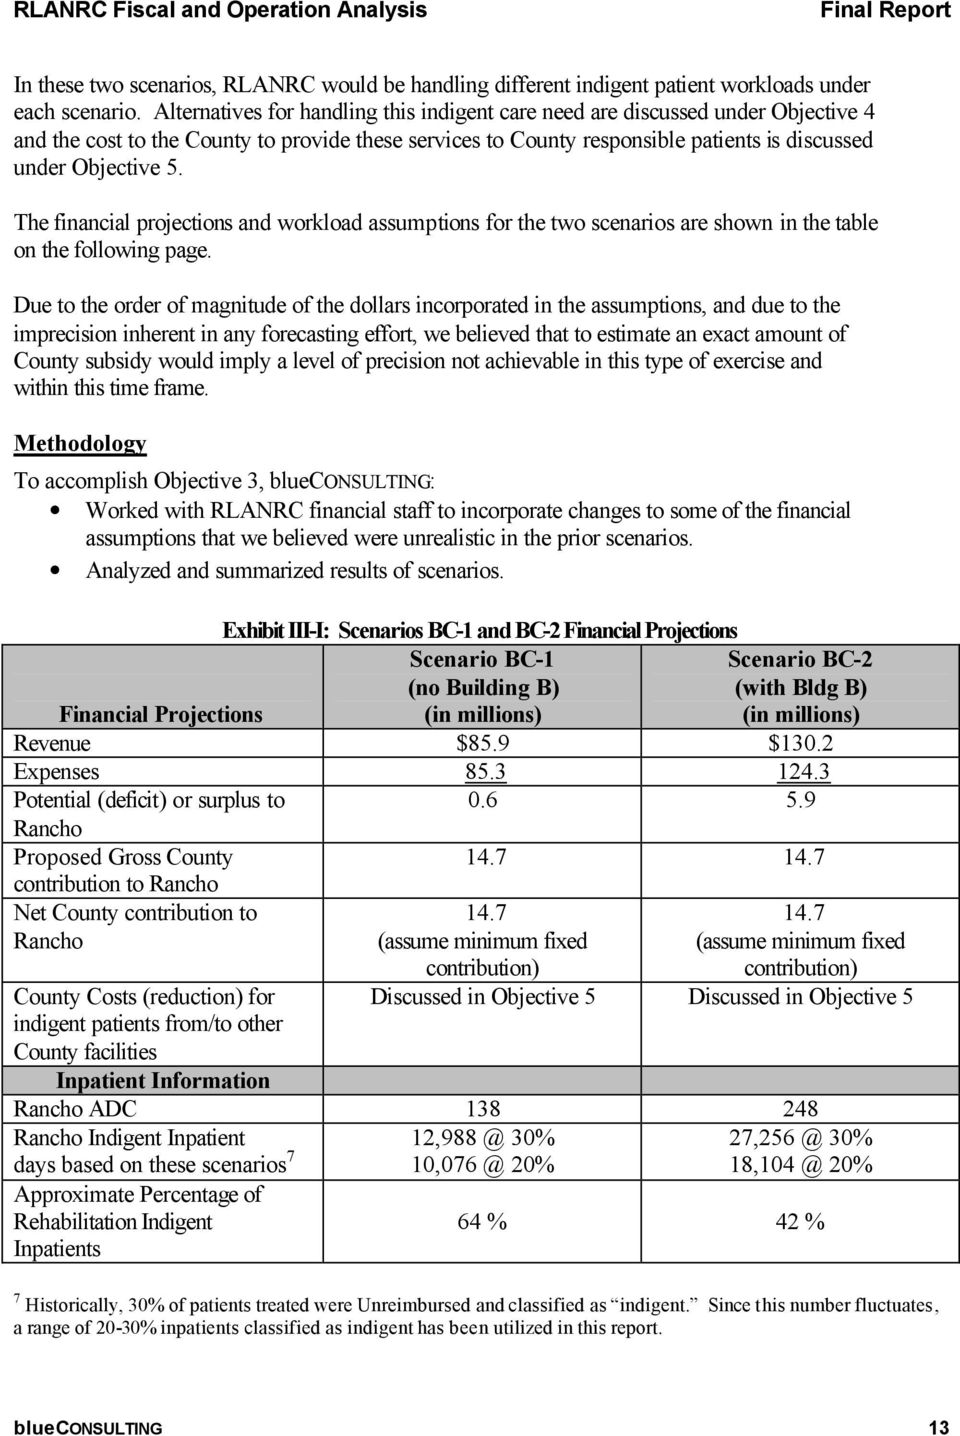 The financial projections and workload assumptions for the two scenarios are shown in the table on the following page.